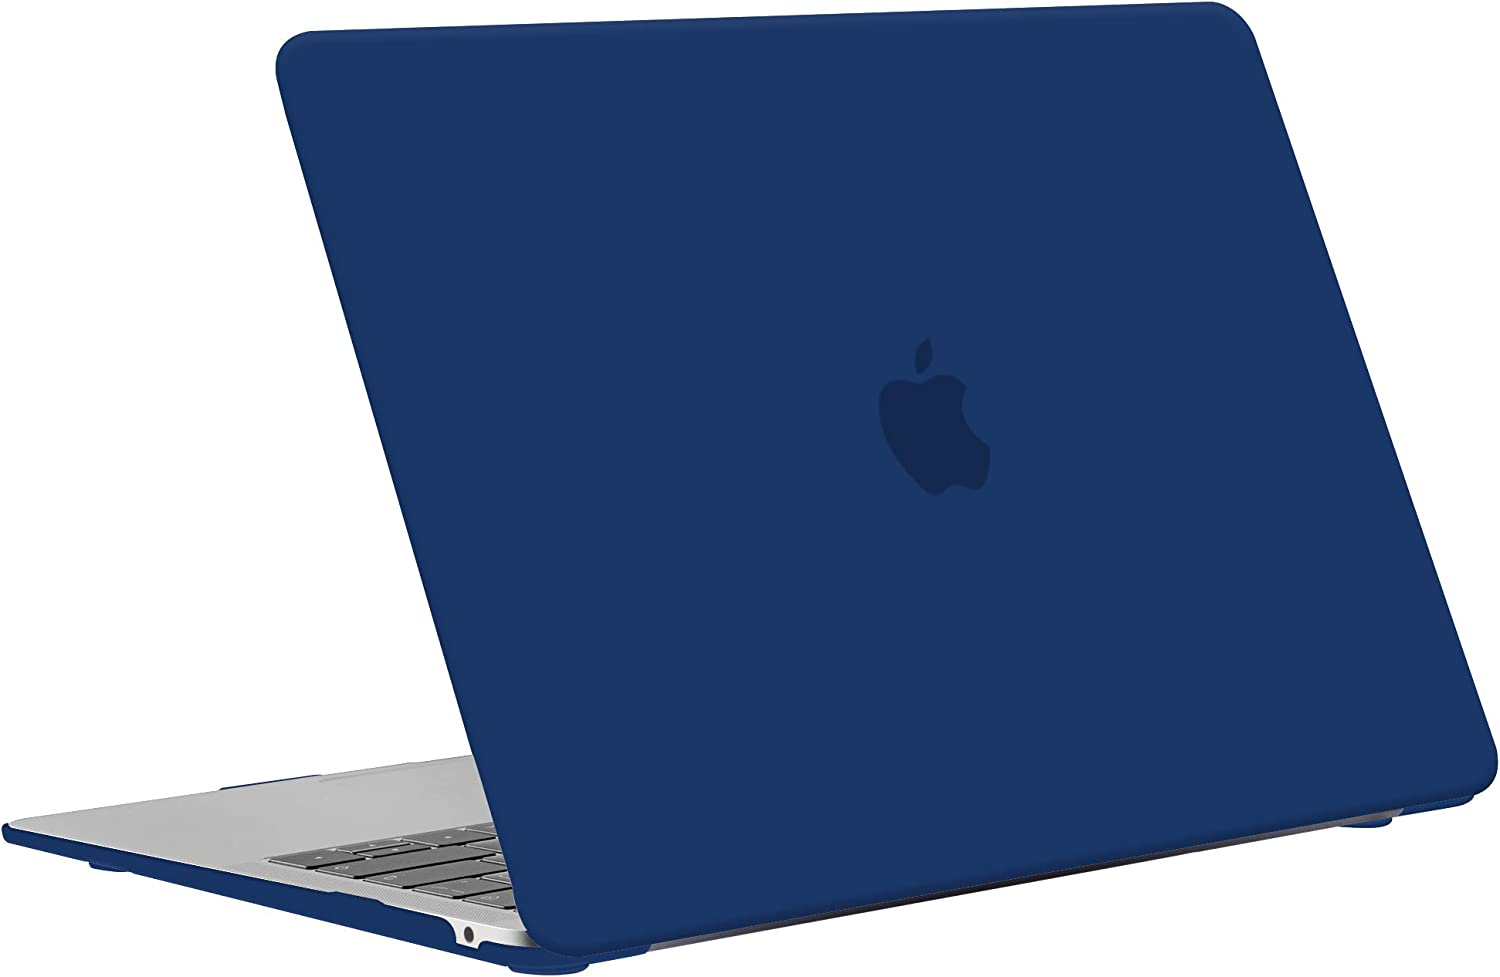 Slim Plastic Hard Shell Case Cover for New MacBook Air 13.3 Retina with Touch ID - Transparent TECOOL MacBook Air 13 inch Case 2018 2019 2020 Model: A1932 // A2179